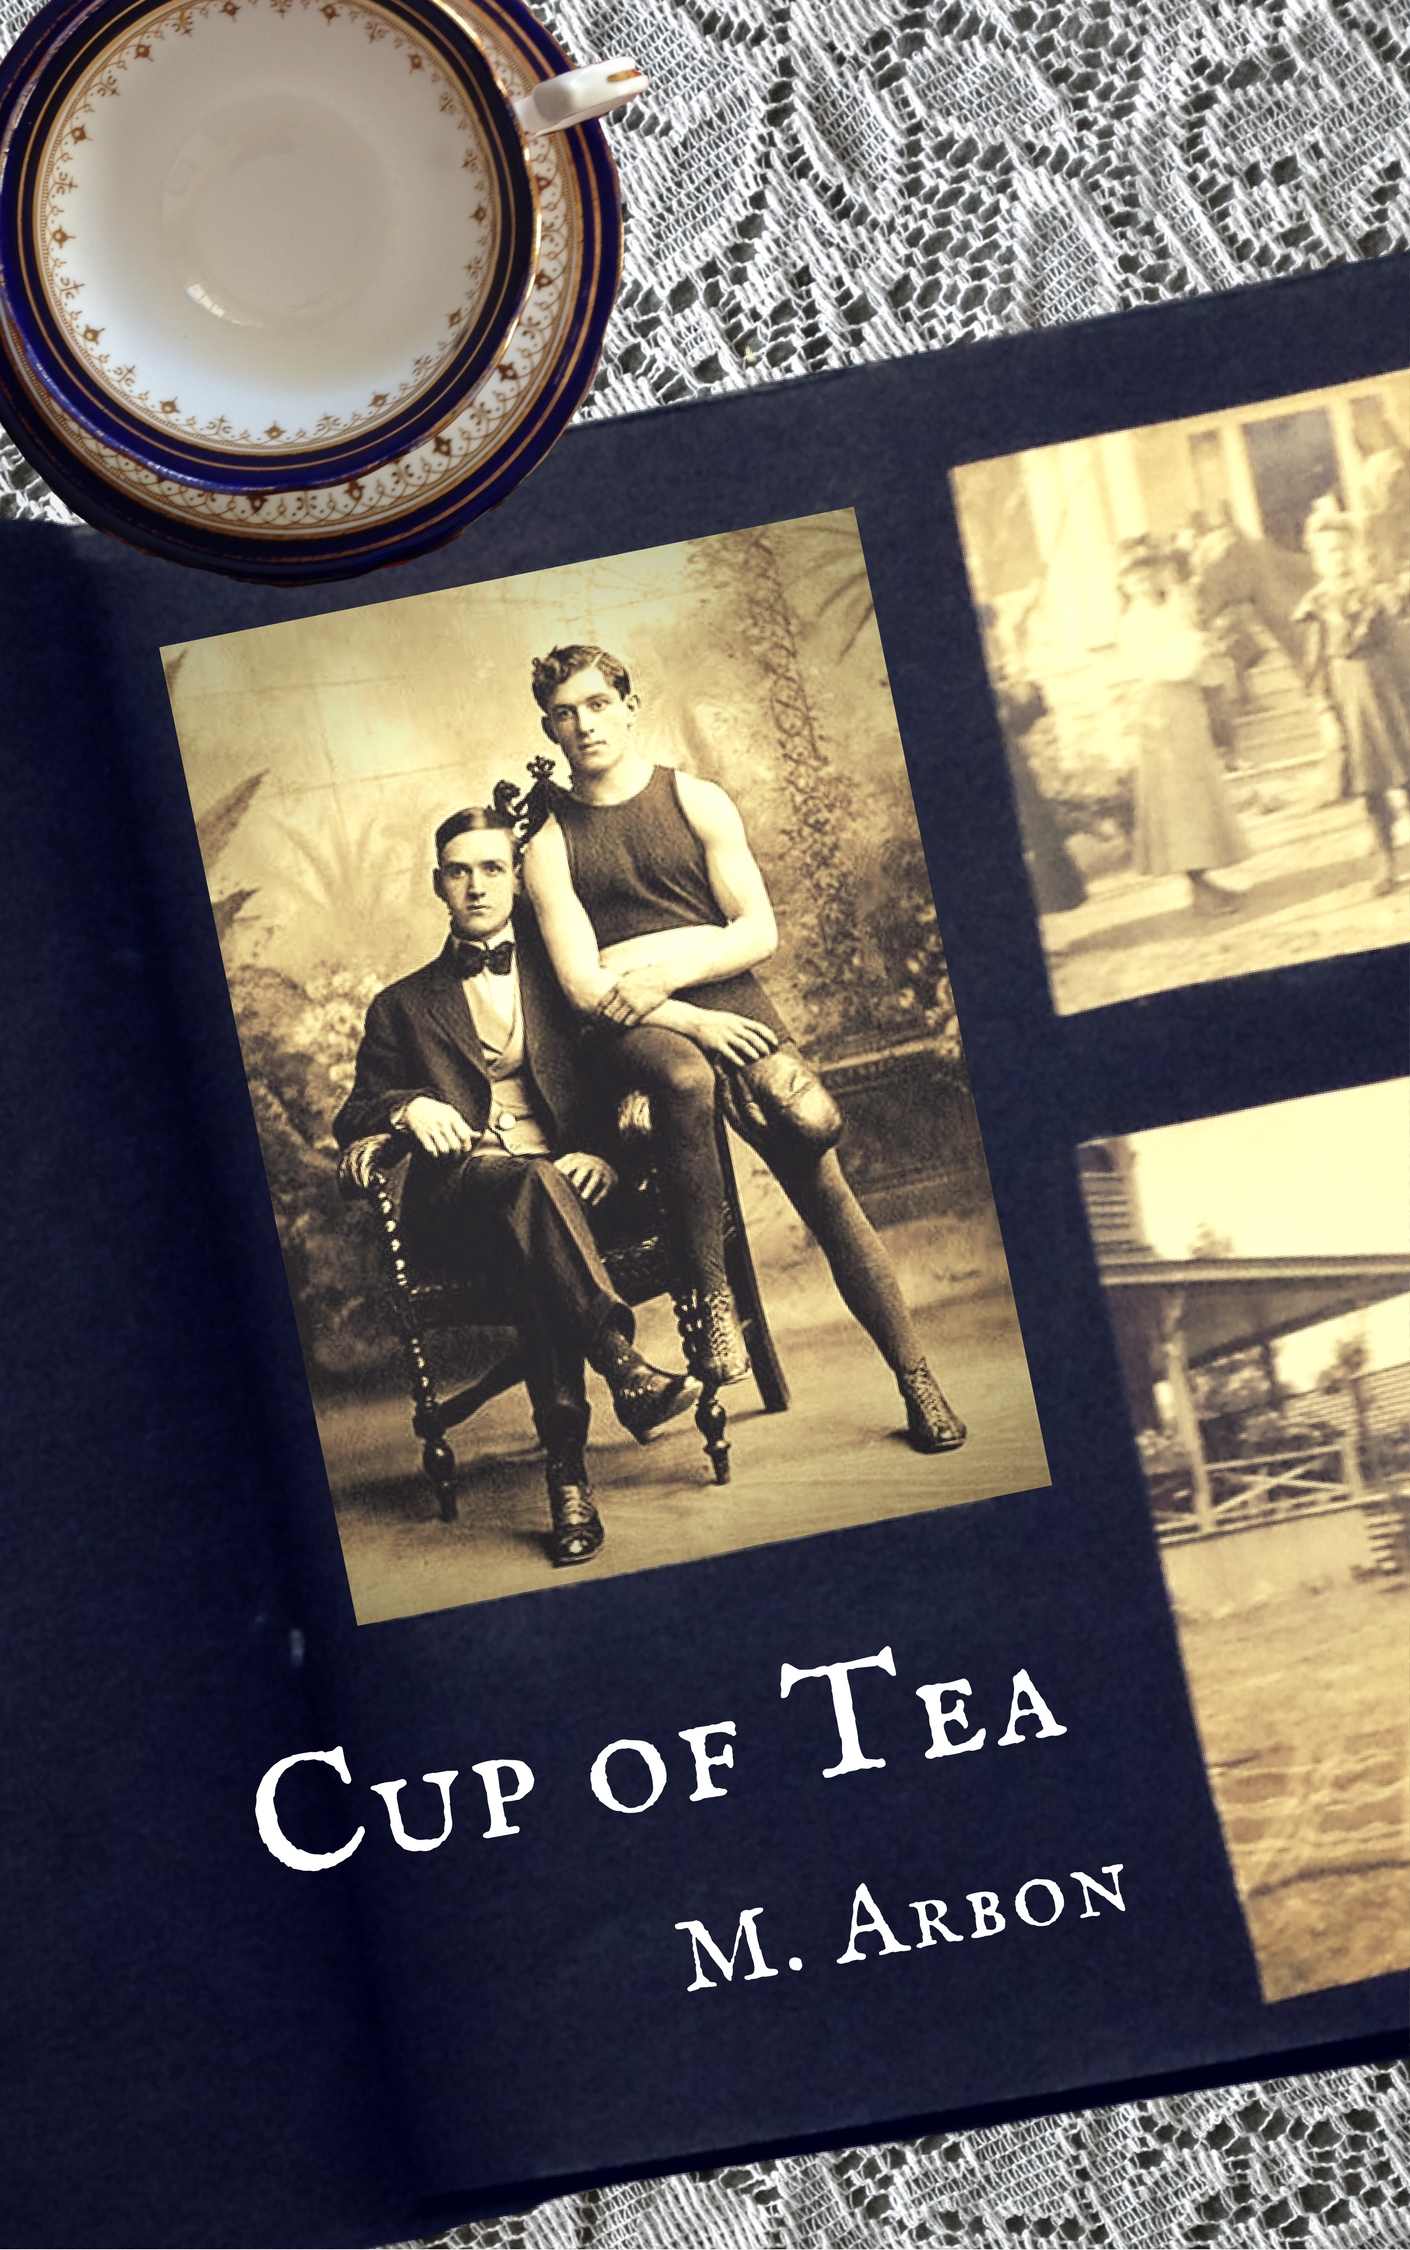 Cover of Cup of Tea, showing a photograph album and teacup